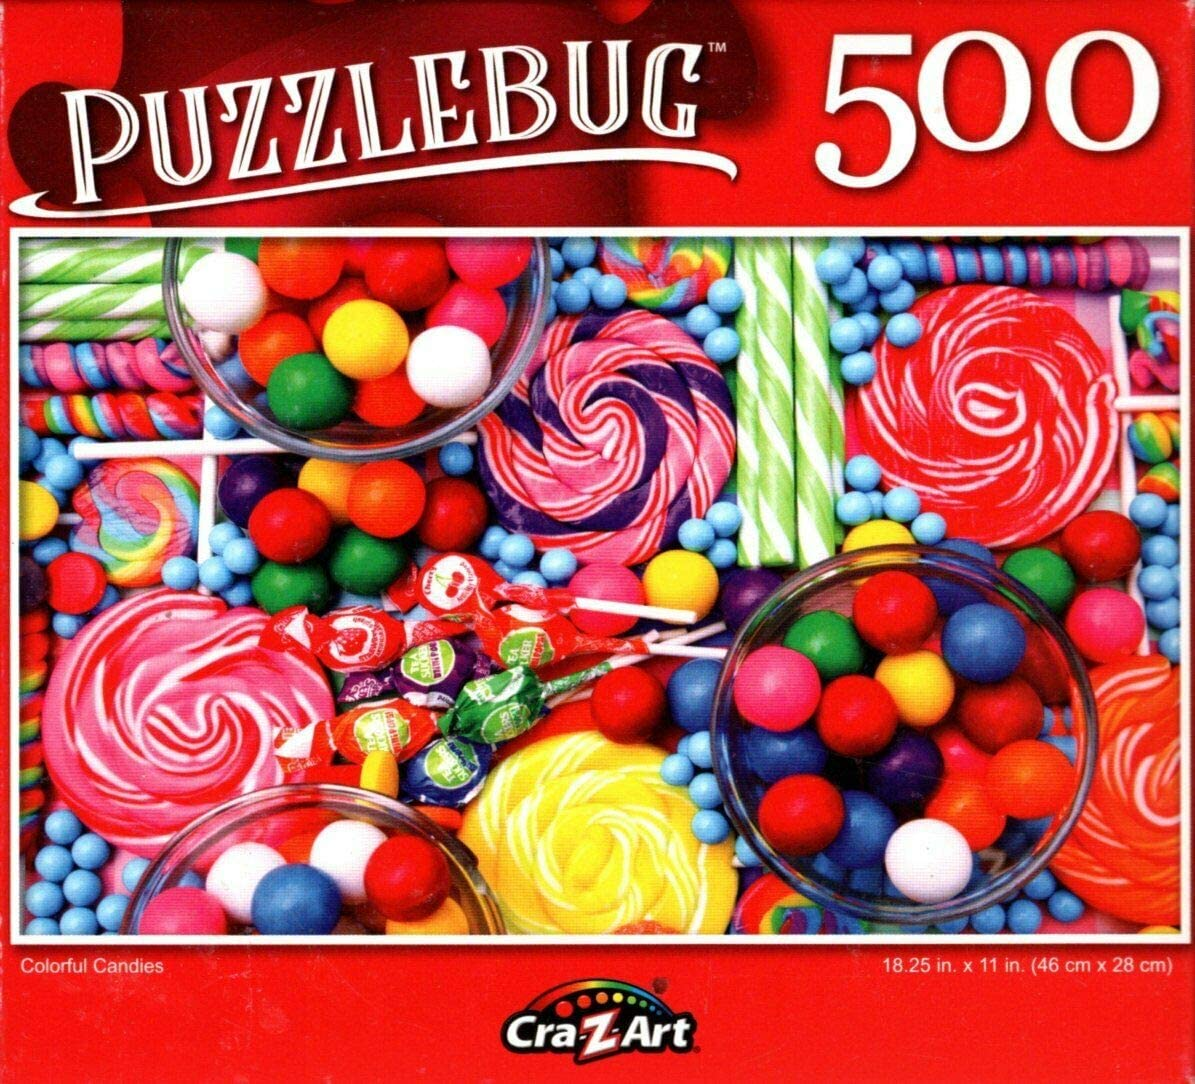 Colorful Candy Bar with Bubblegum and Lollipops 500 Piece Jigsaw Puzzle